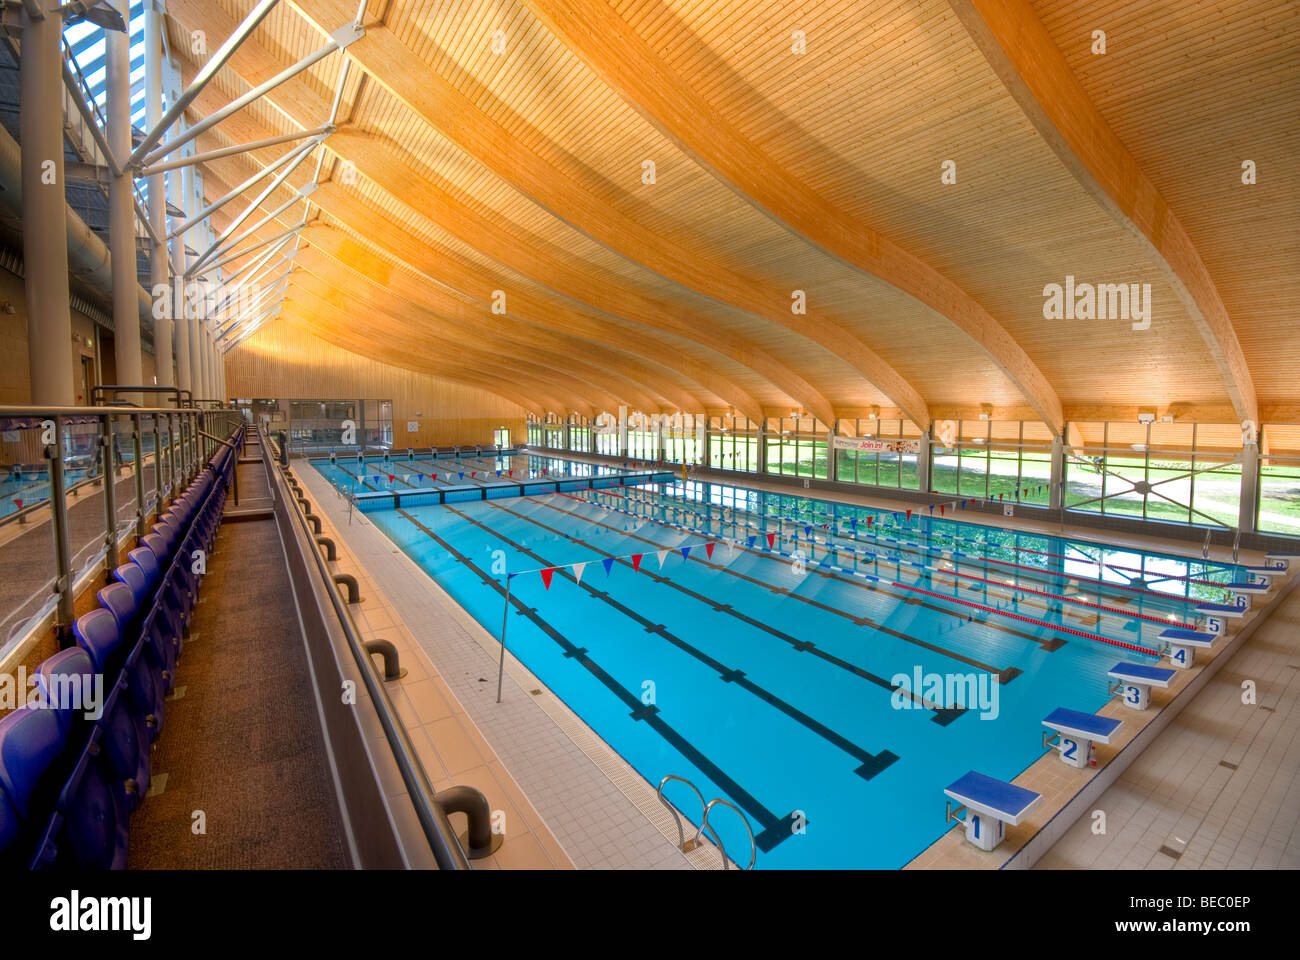 Olympic sized swimming pool at the mountbatten centre Mountbatten swimming pool portsmouth